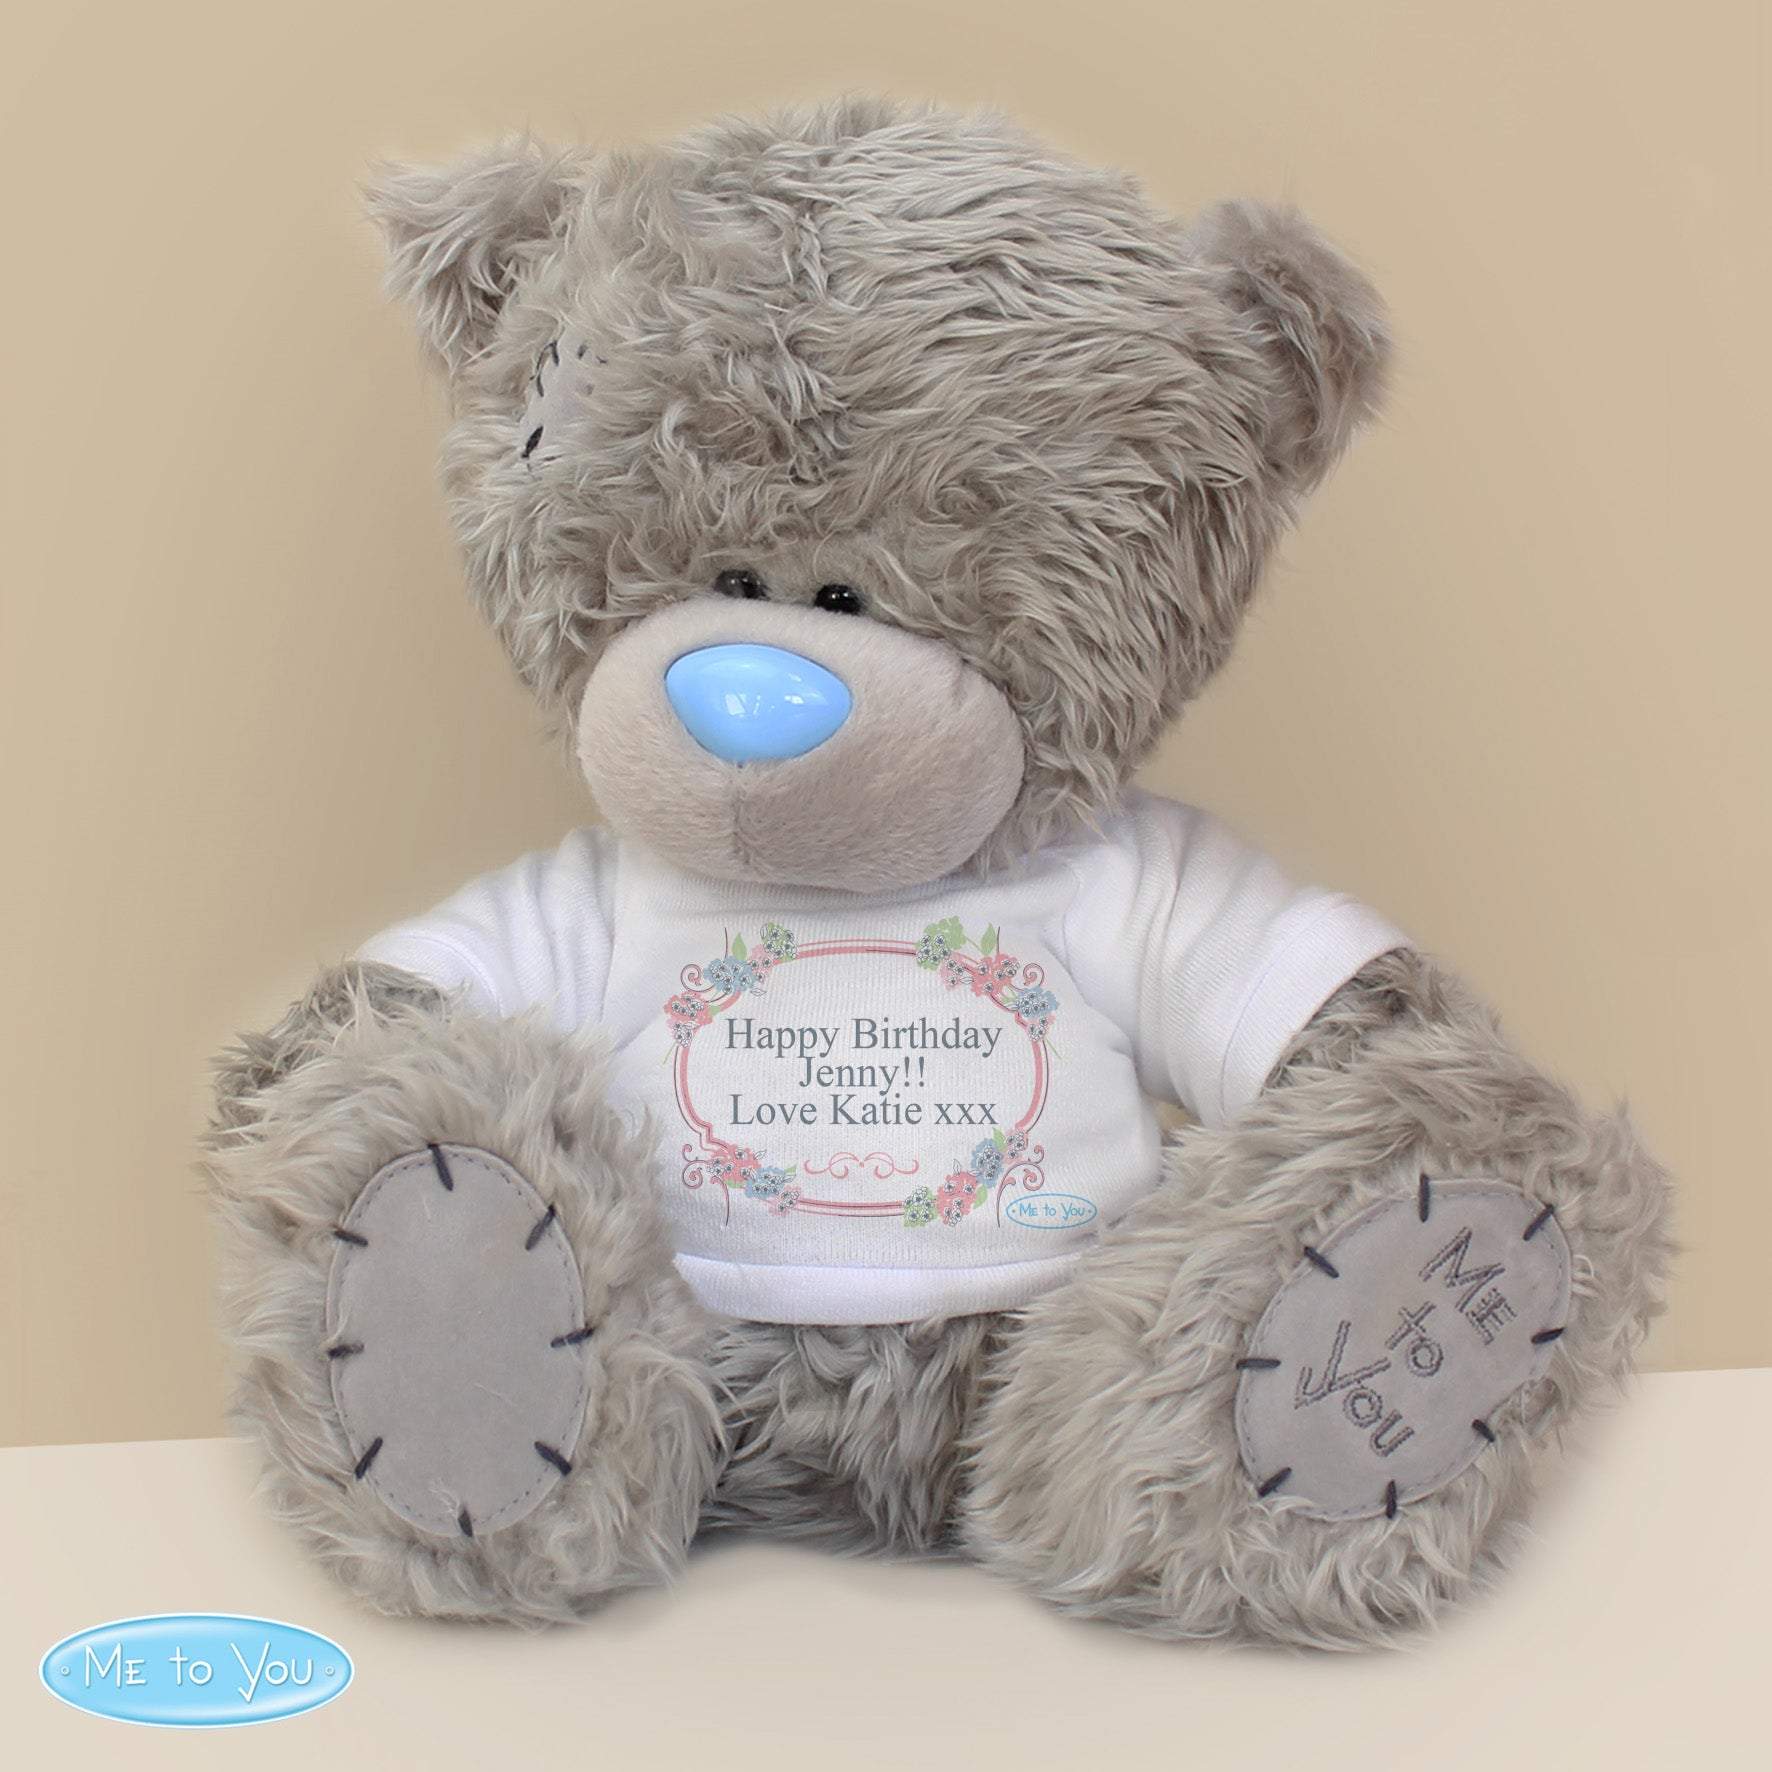 Personalised Me To You Teddy Bear with Floral T-Shirt